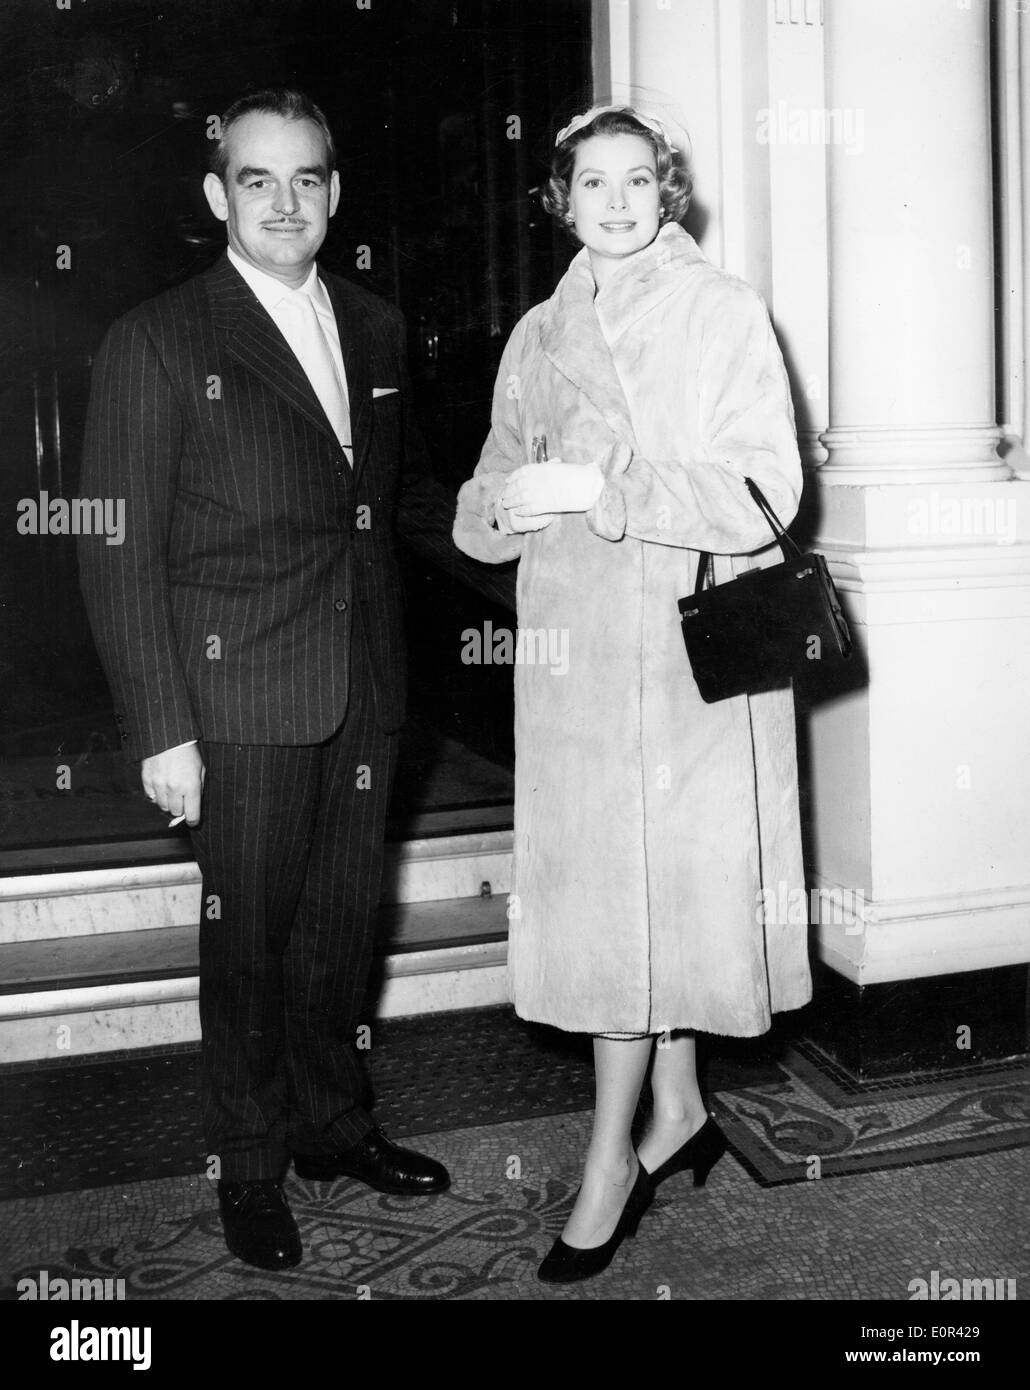 Prince Rainier with wife Grace Kelly visiting Buckingham Palace - Stock Image